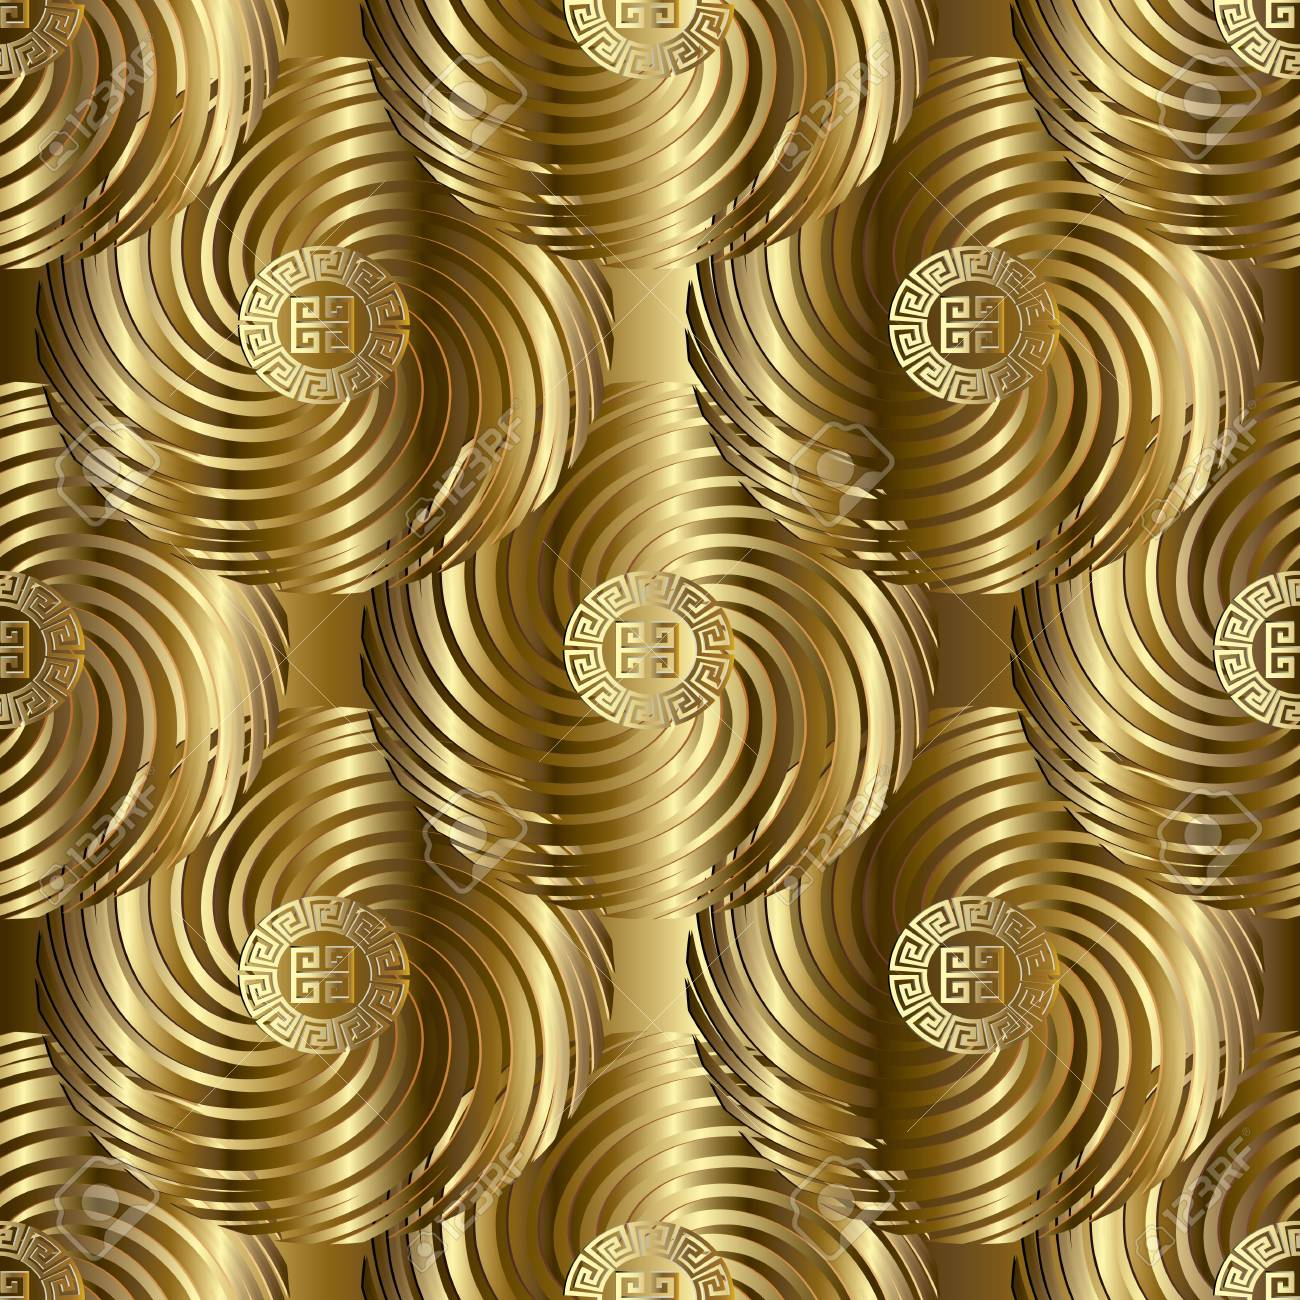 Ornate Surface Vintage 3d Texture Gold Modern Vector Meander Seamless Pattern Geometric Golden Background Wallpaper With Ornamental Abstract Shapes